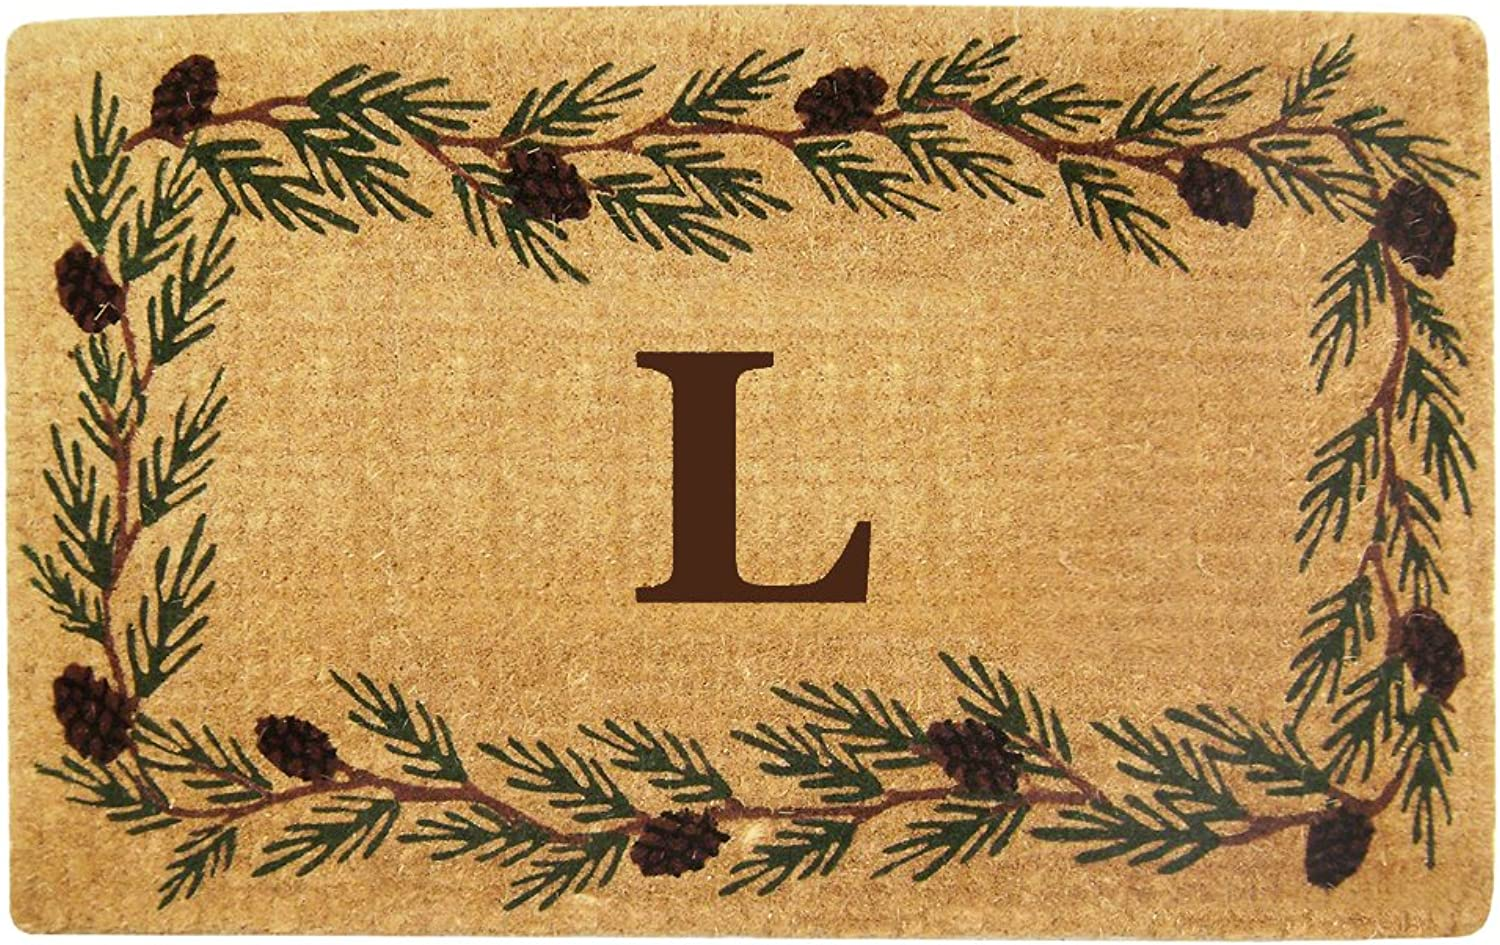 Nedia Home Heavy Duty Coco Mat with Evergreen Border, 30 by 48-Inch, Monogrammed L